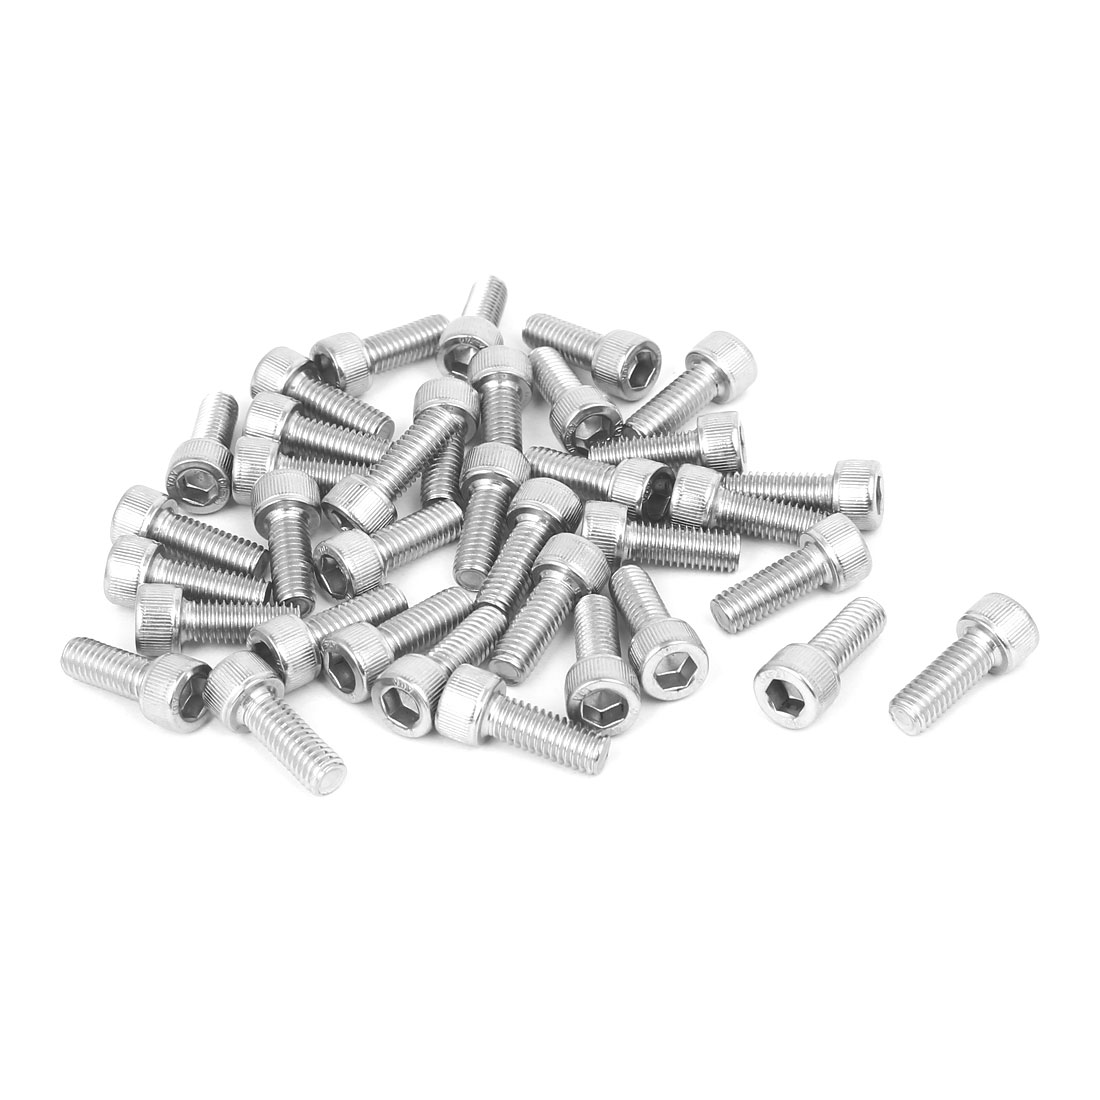 M6 x 16mm Thread 304 Stainless Steel Hex Socket Head Cap Screw Bolt DIN912 36pcs